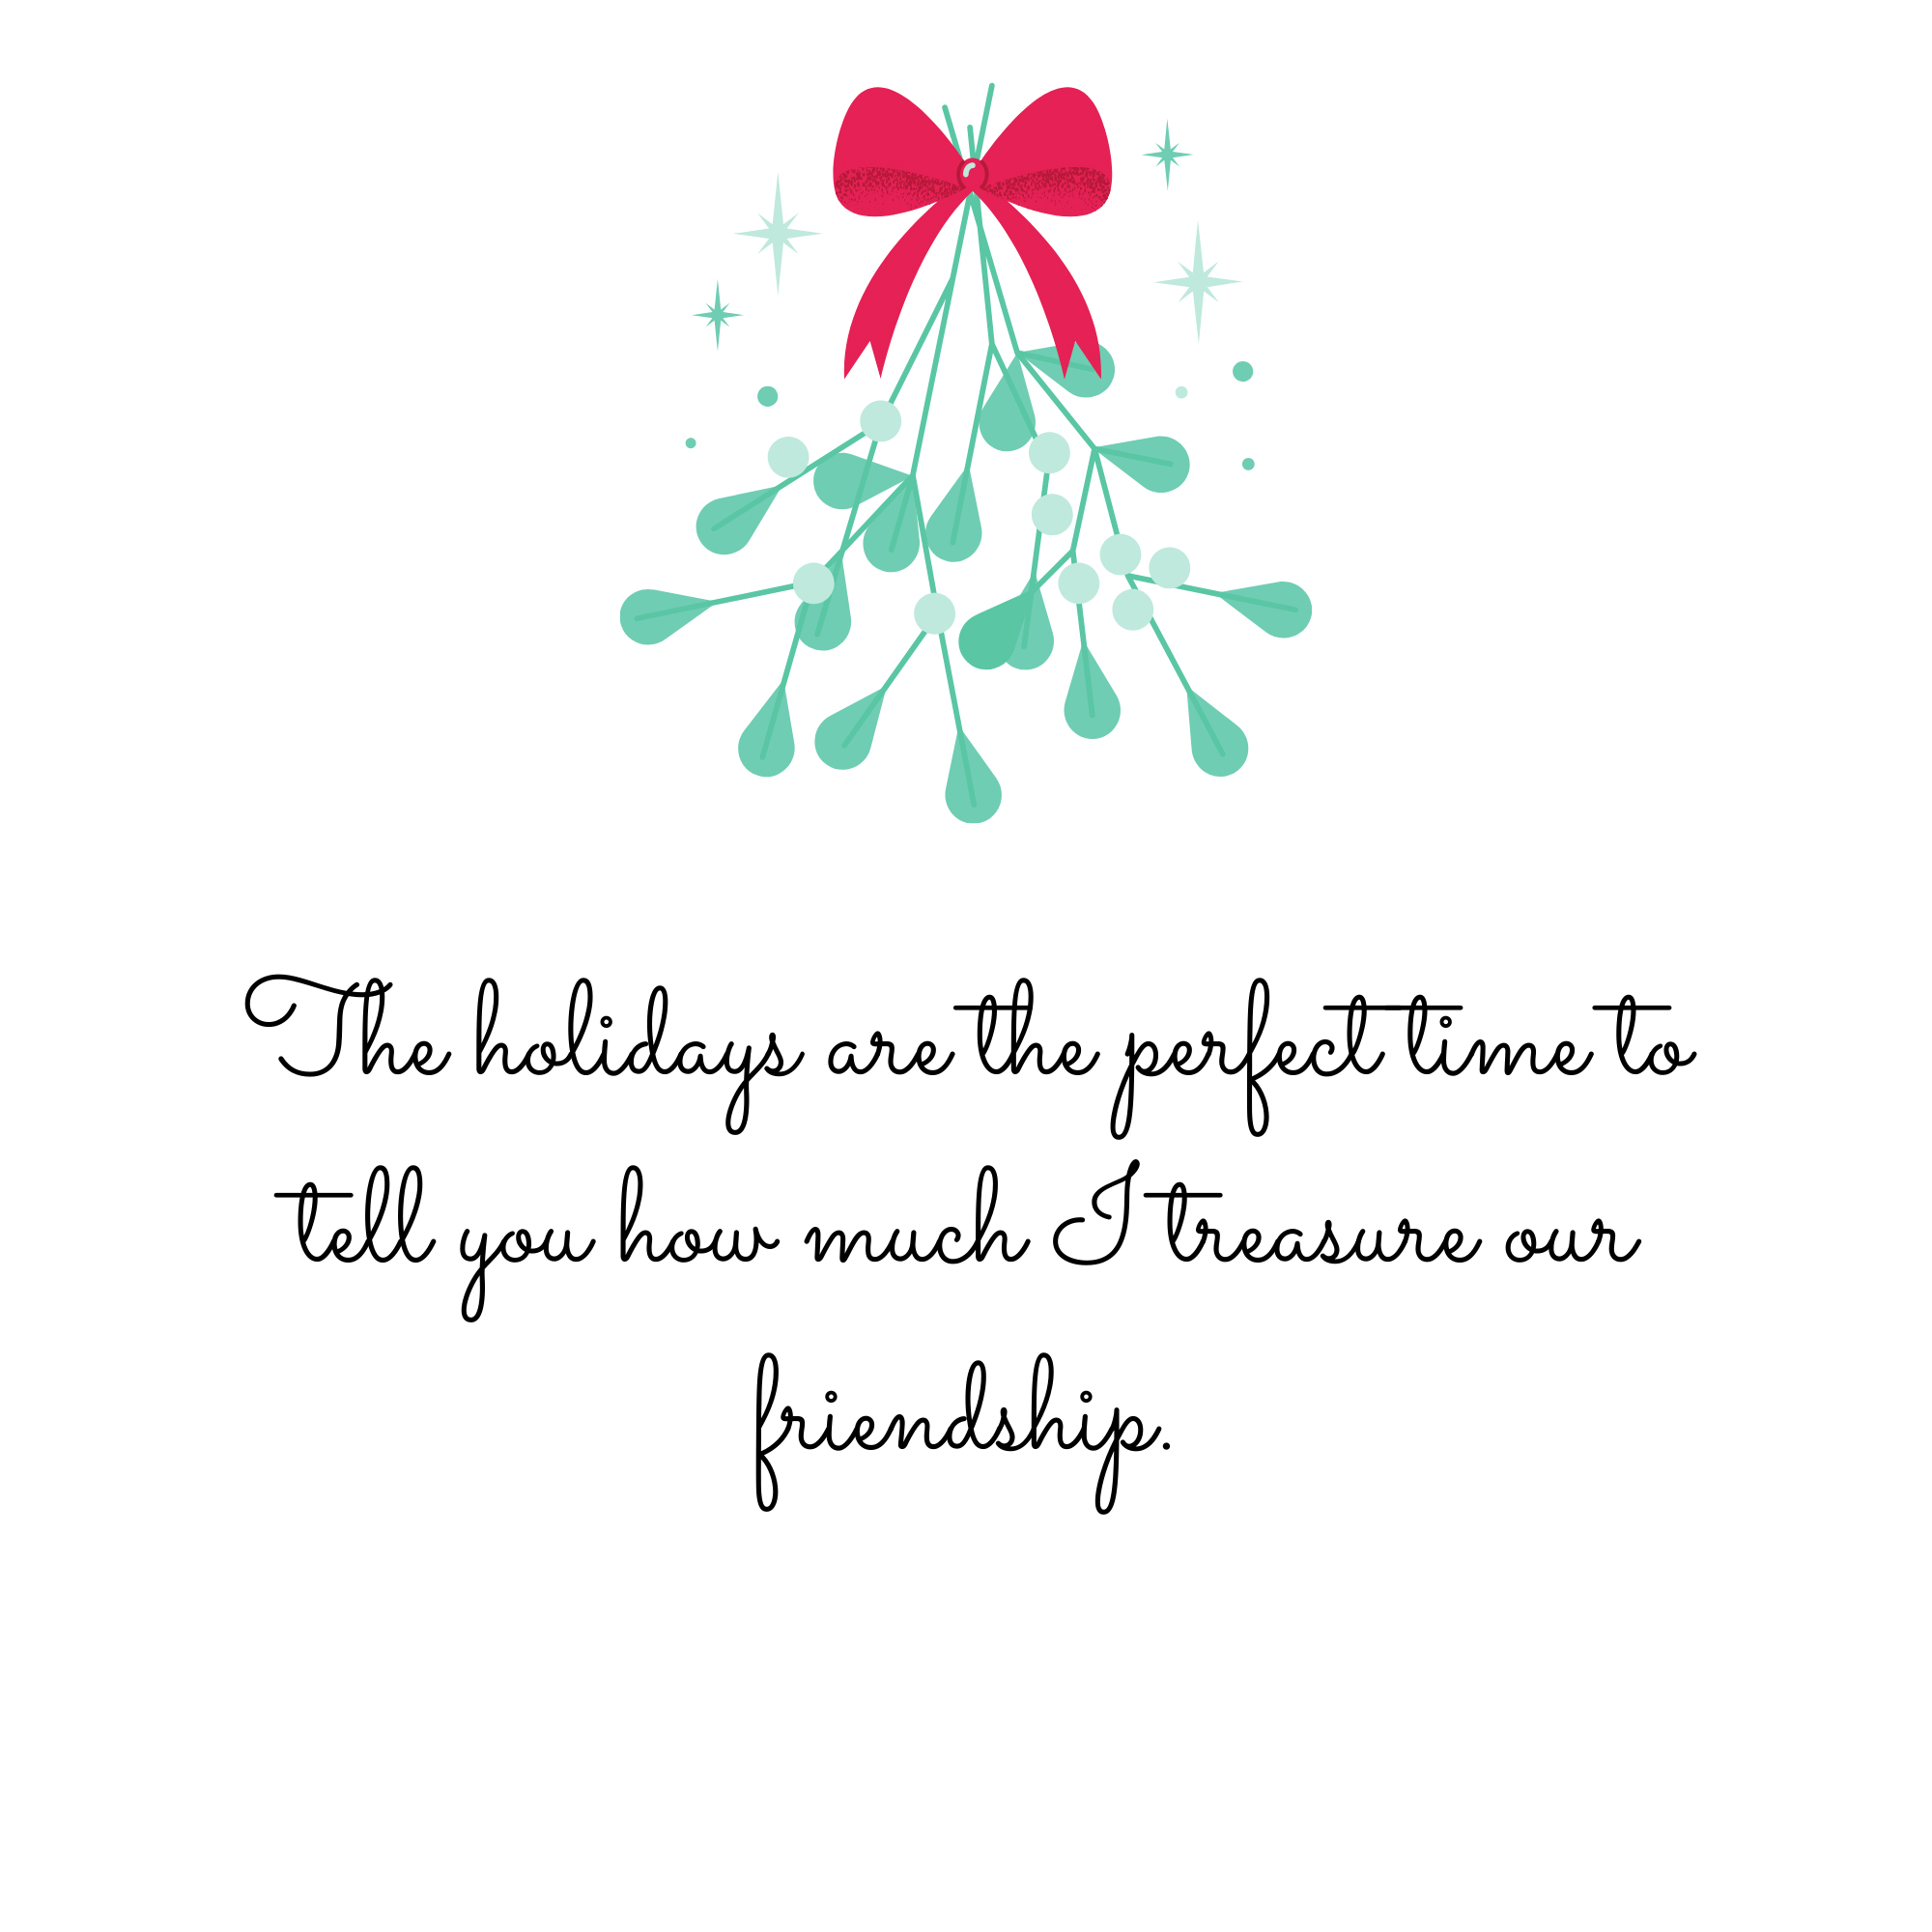 The holidays are the perfect time you tell you how much I treasure our friendship.